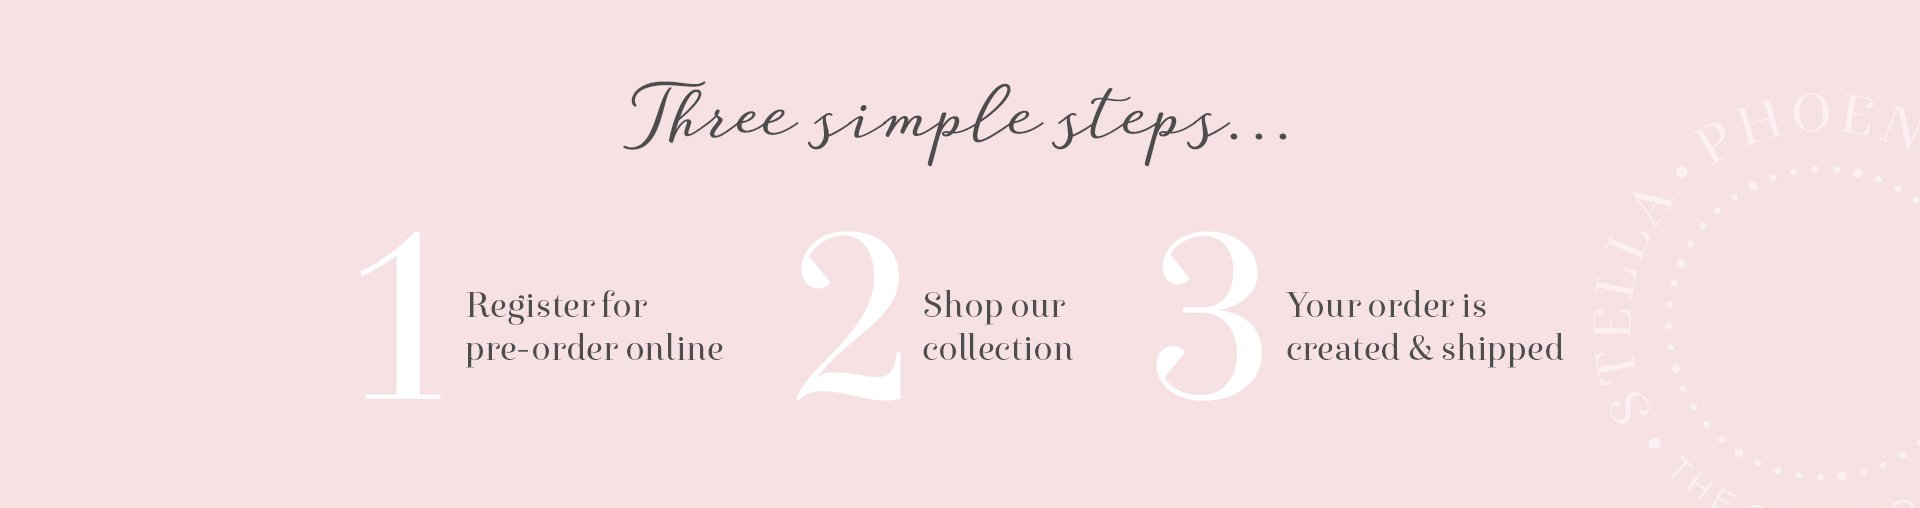 Three simple steps...